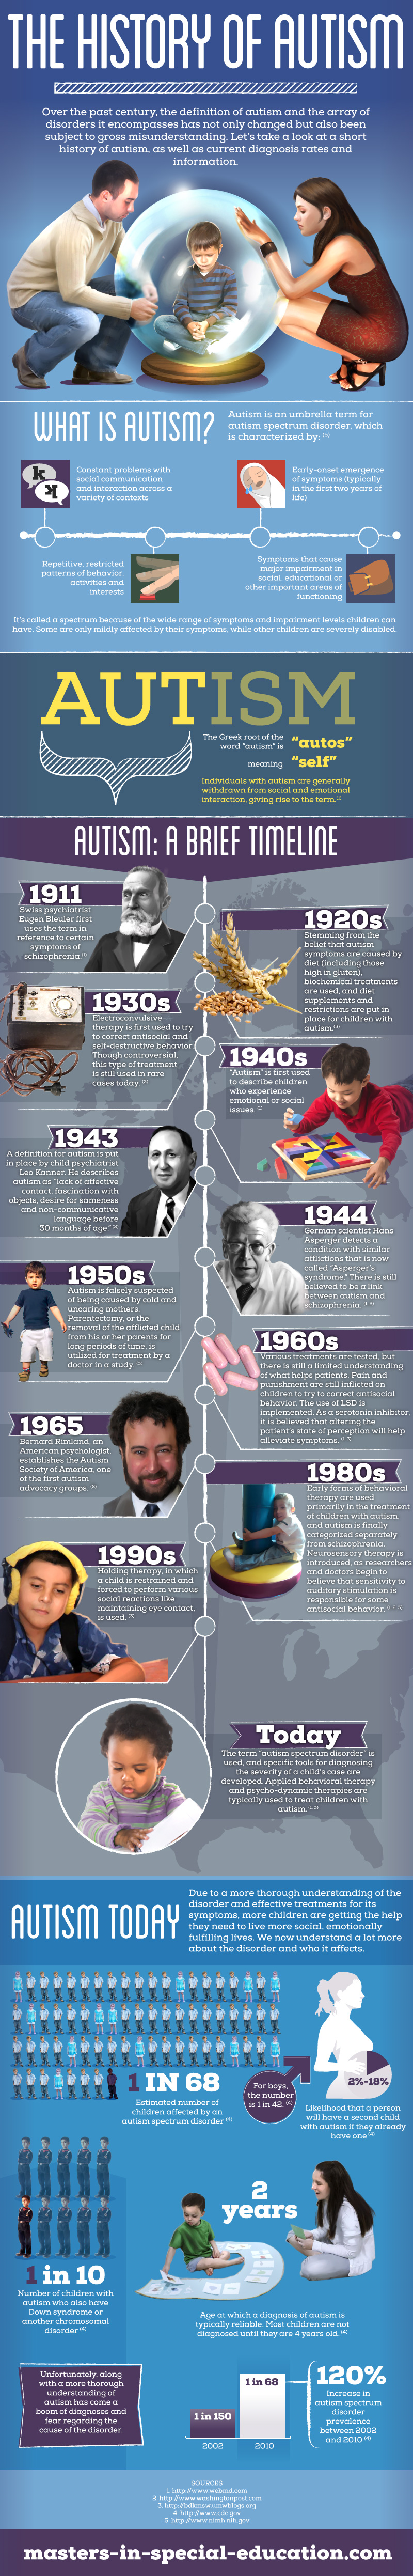 The History of Autism